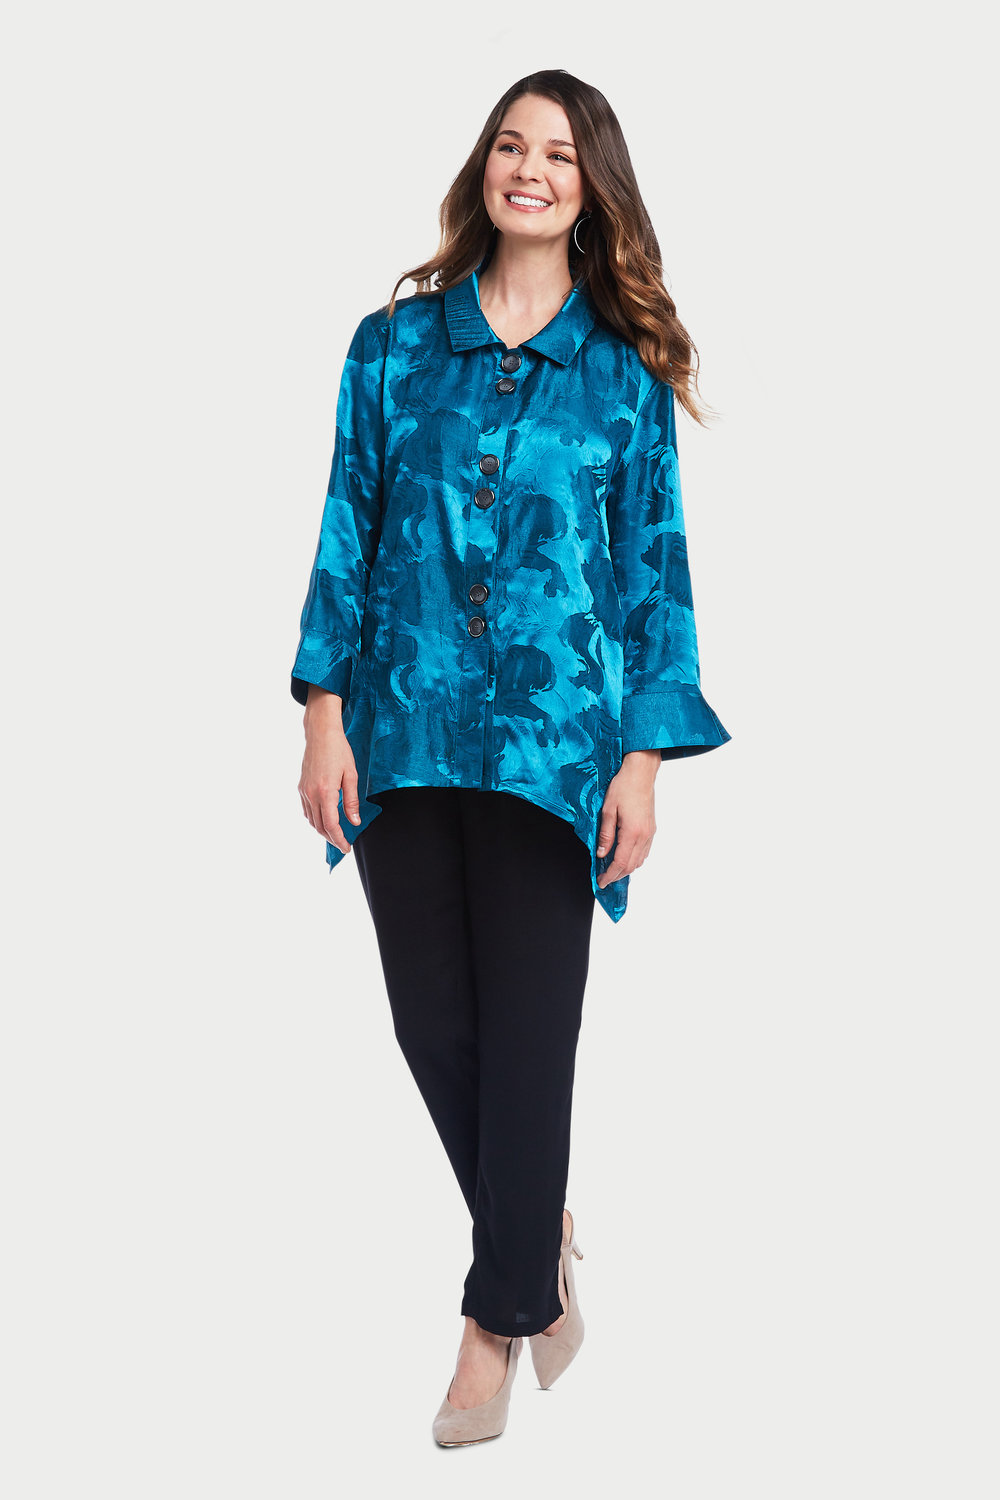 20132 - Teal without Gold (1).jpg